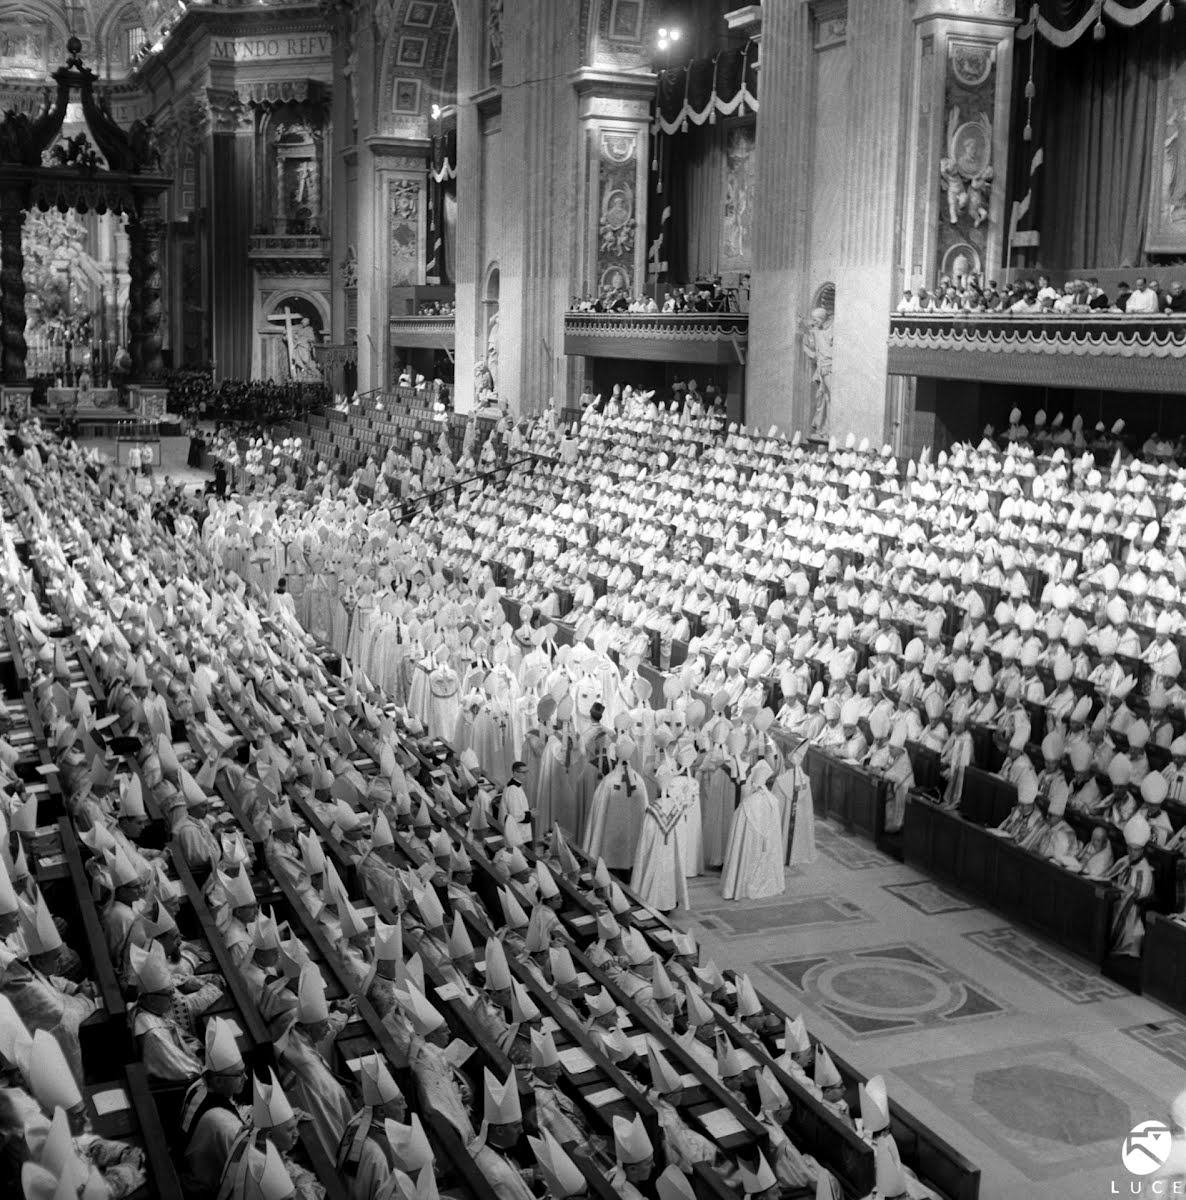 The Vatican Ecumenical Council, inaugurated by Pope John XXIII in 1962, started a fundamental dialogue between the Catholic Church and the secular world.